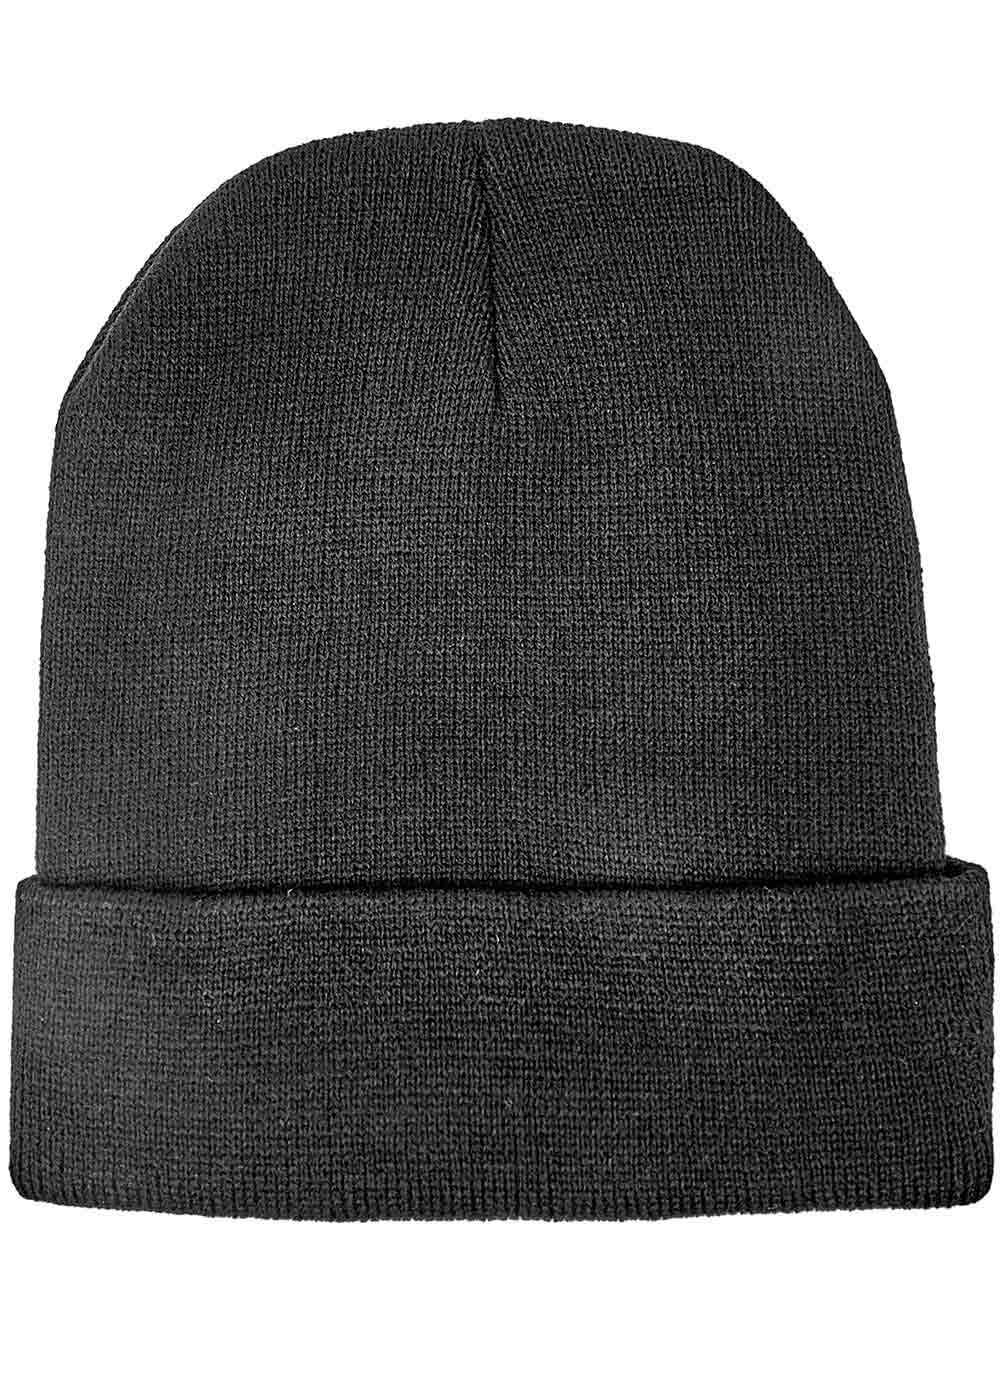 Teenzshop Wink Eye Beanie - Black - Back